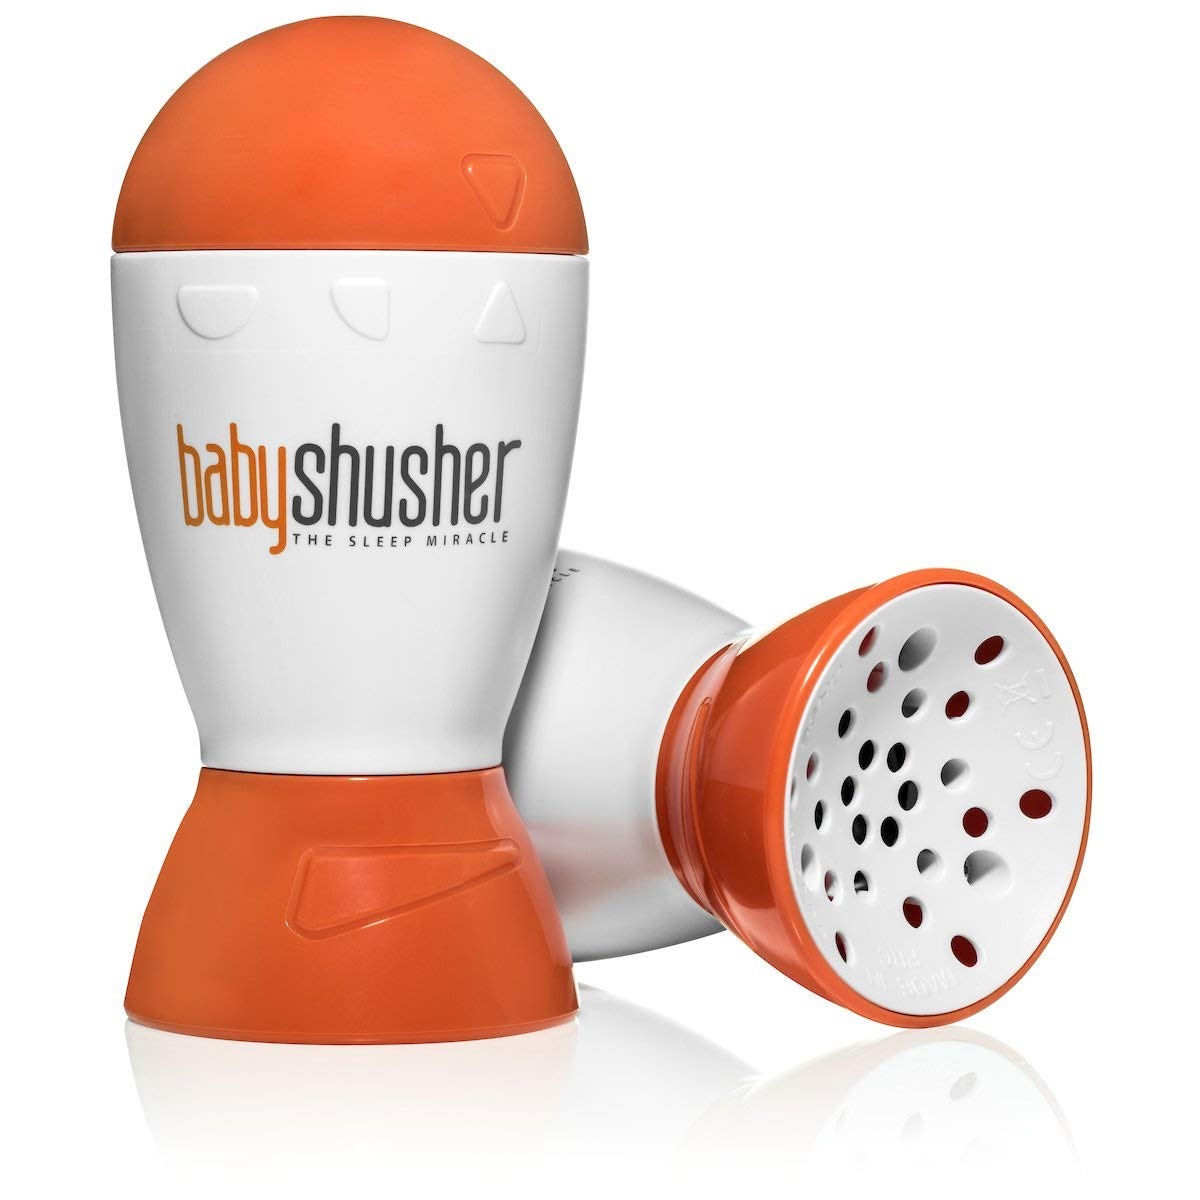 The Baby Shusher Soother